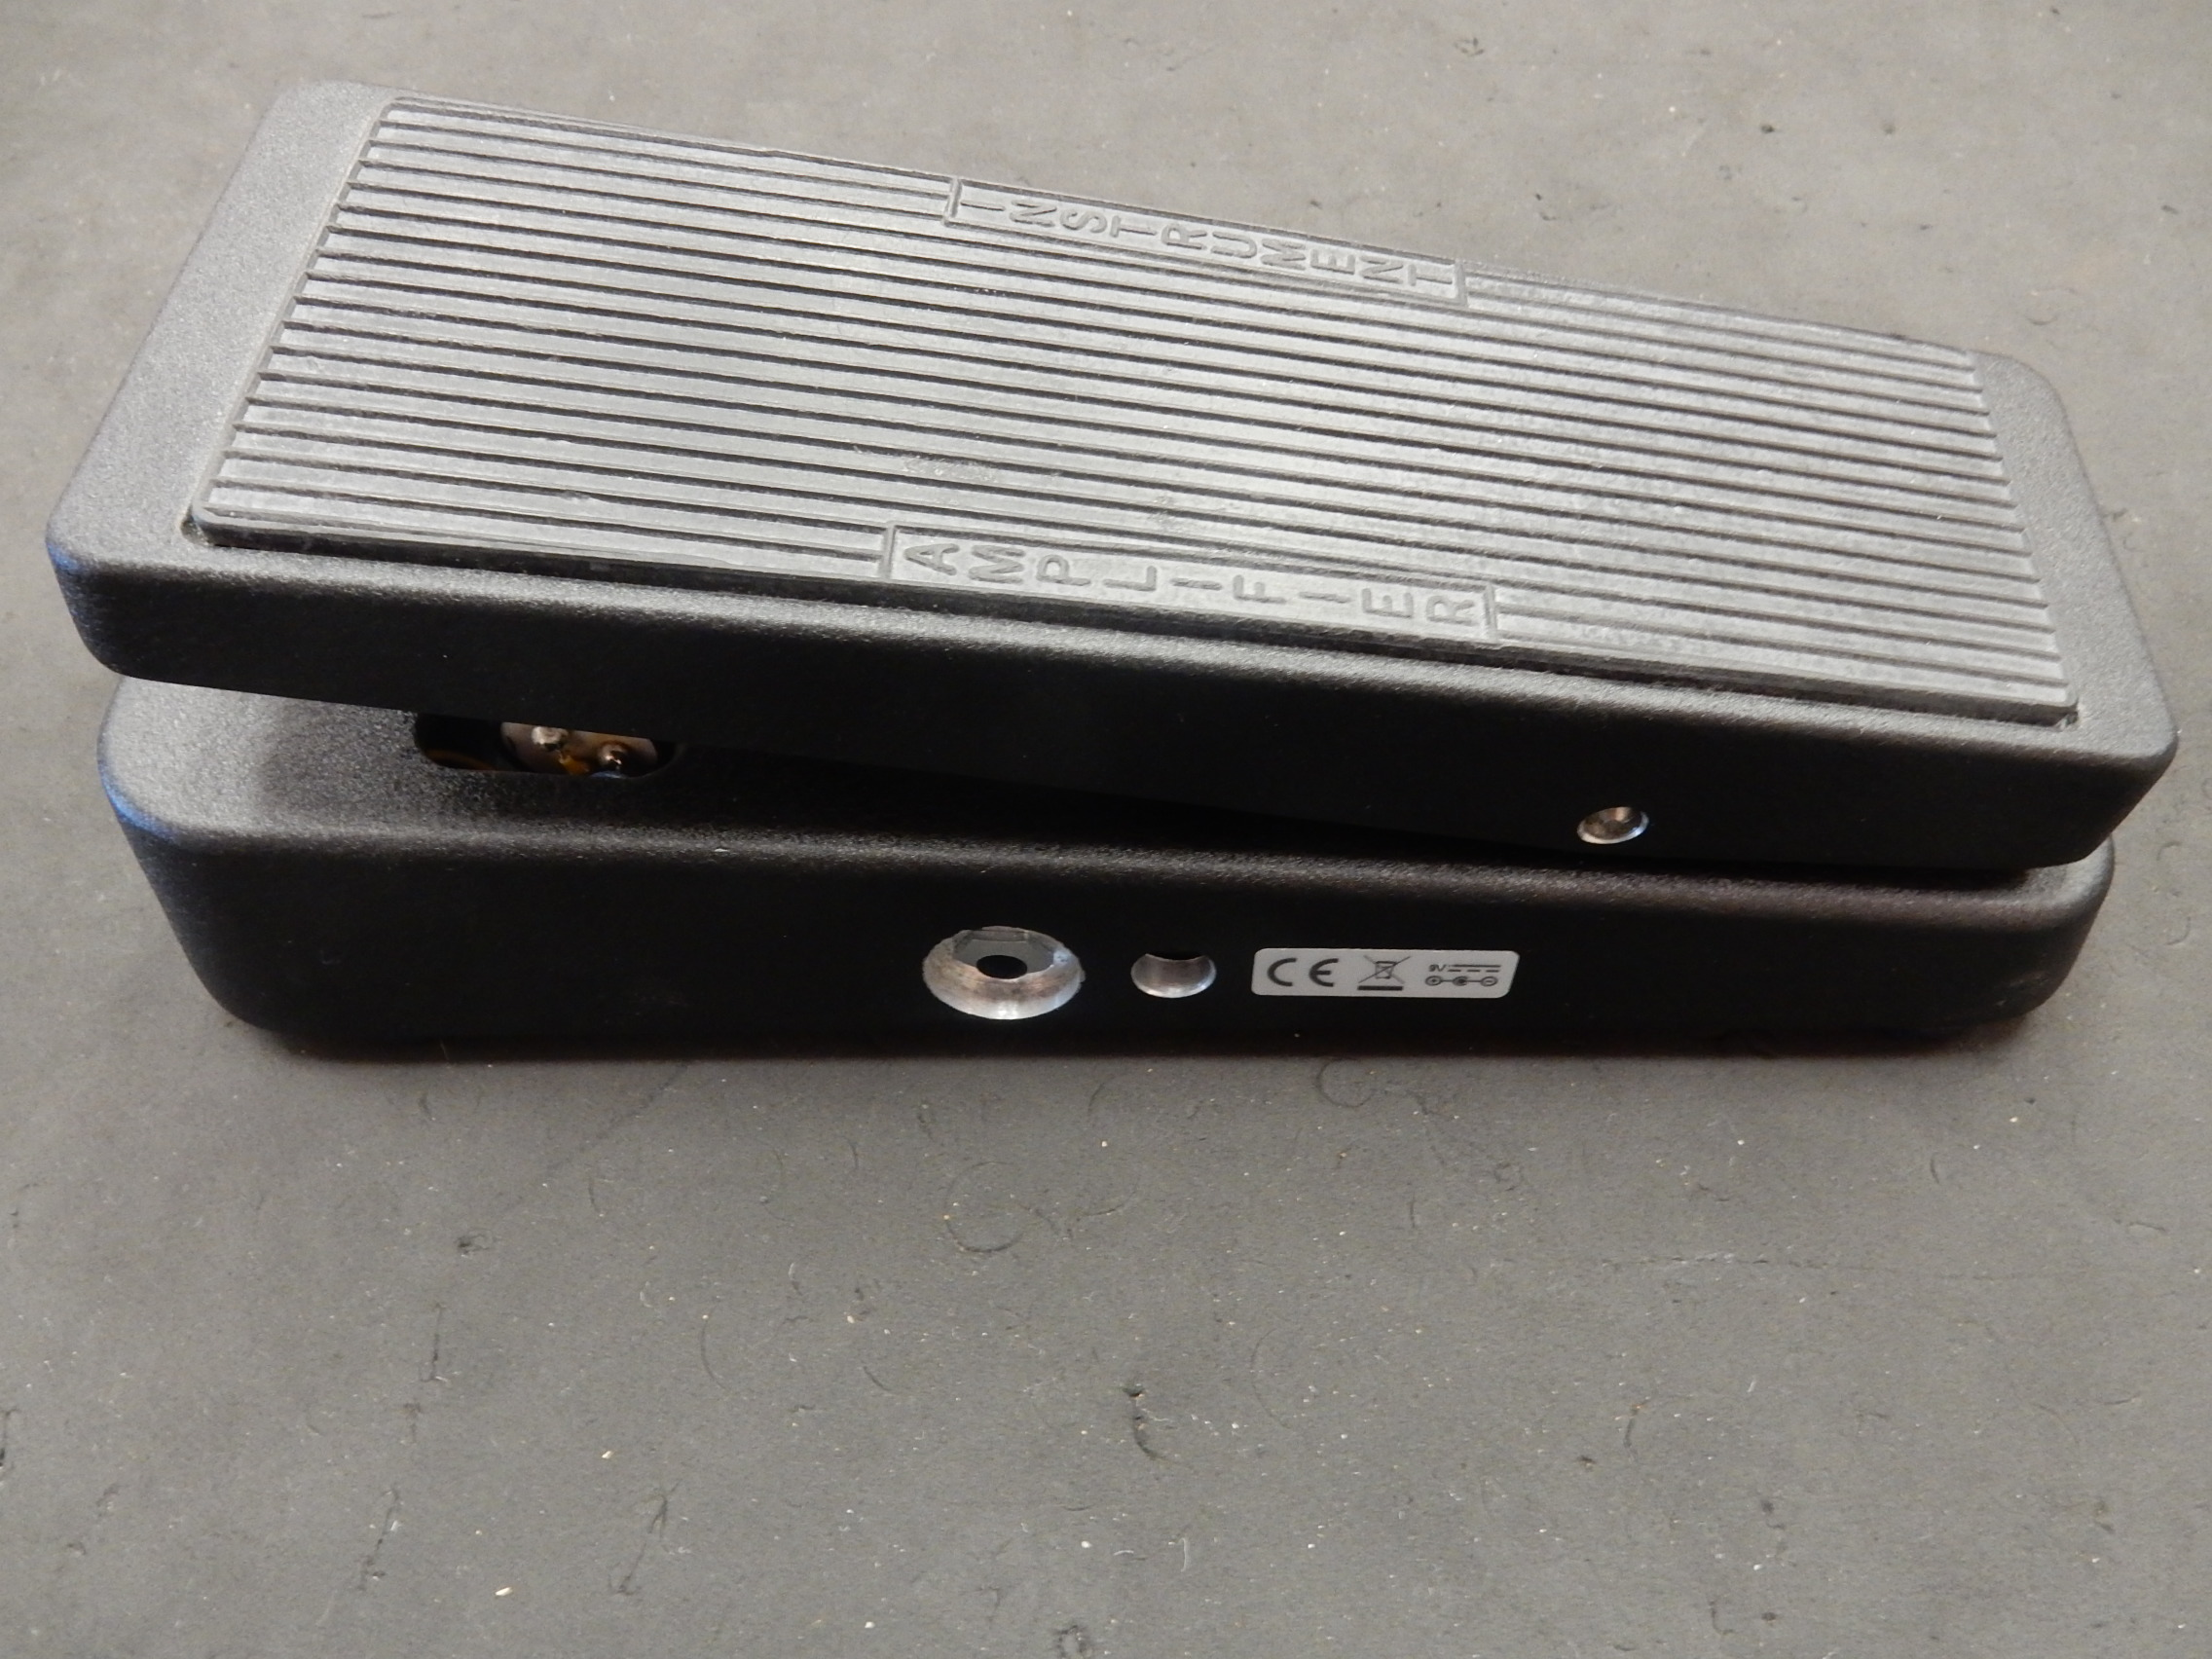 Dunlop - GCB95 Cry Baby Wah Pedal